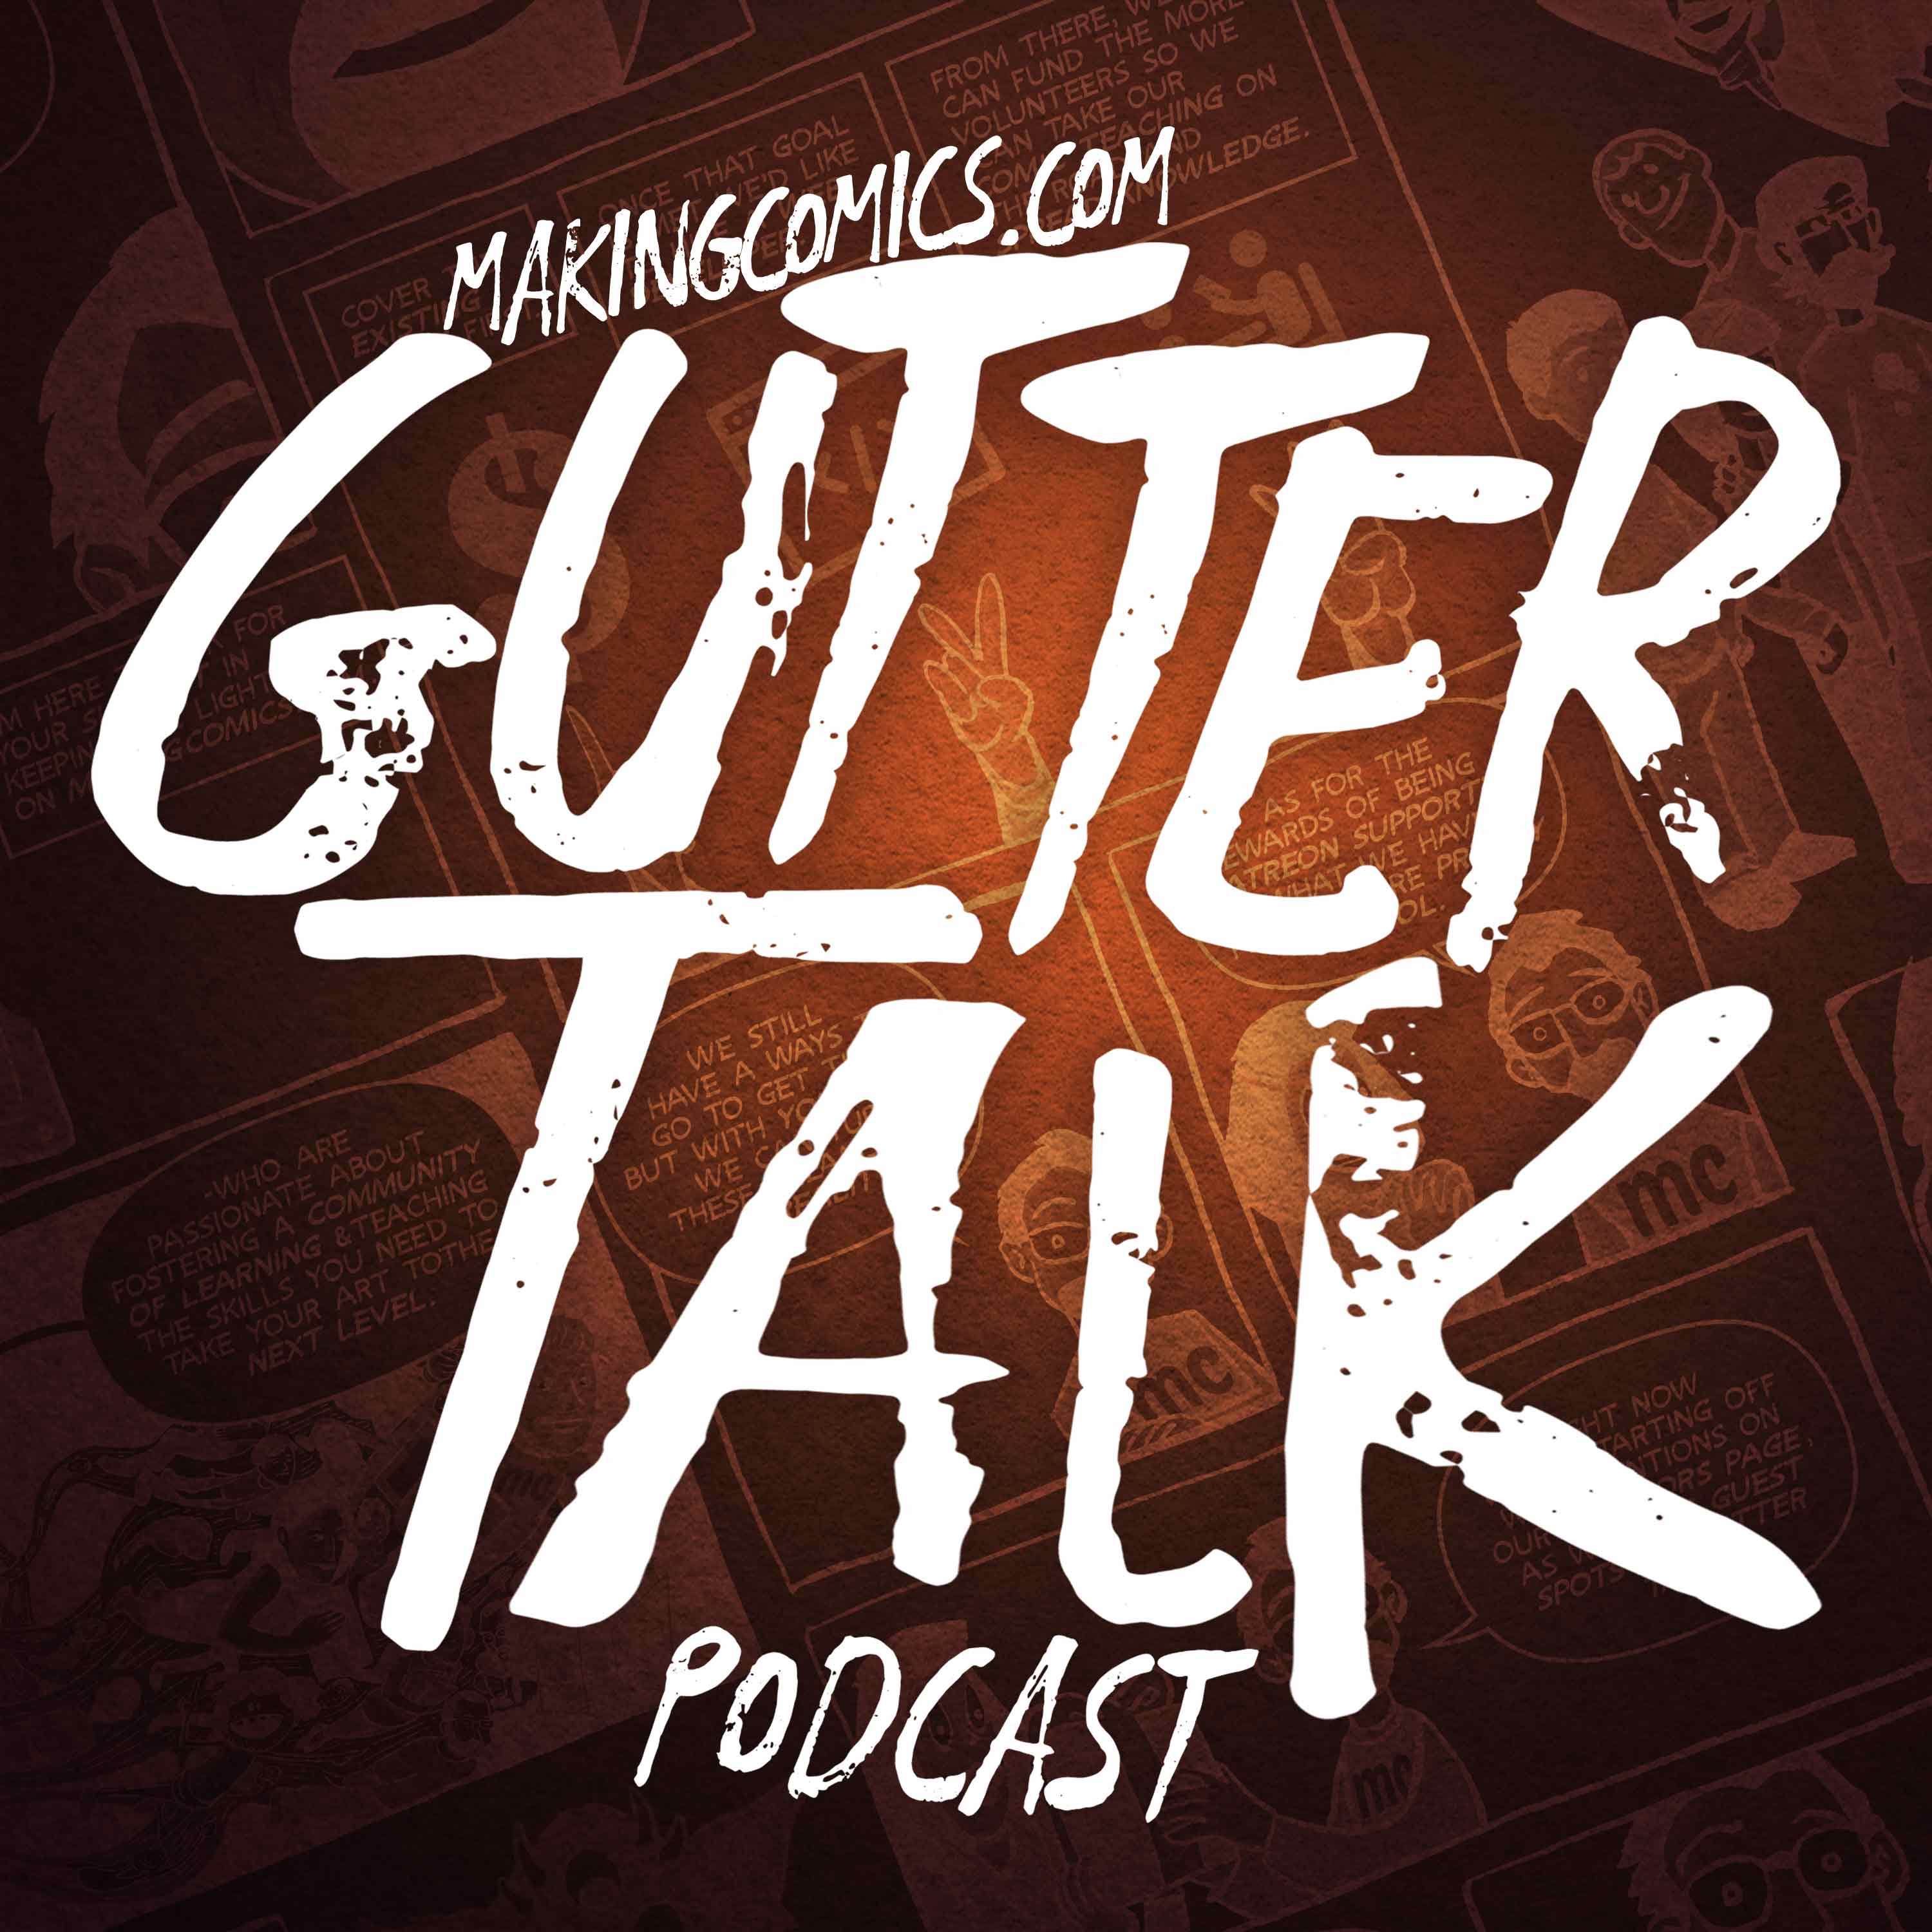 podcast – MakingComics.com